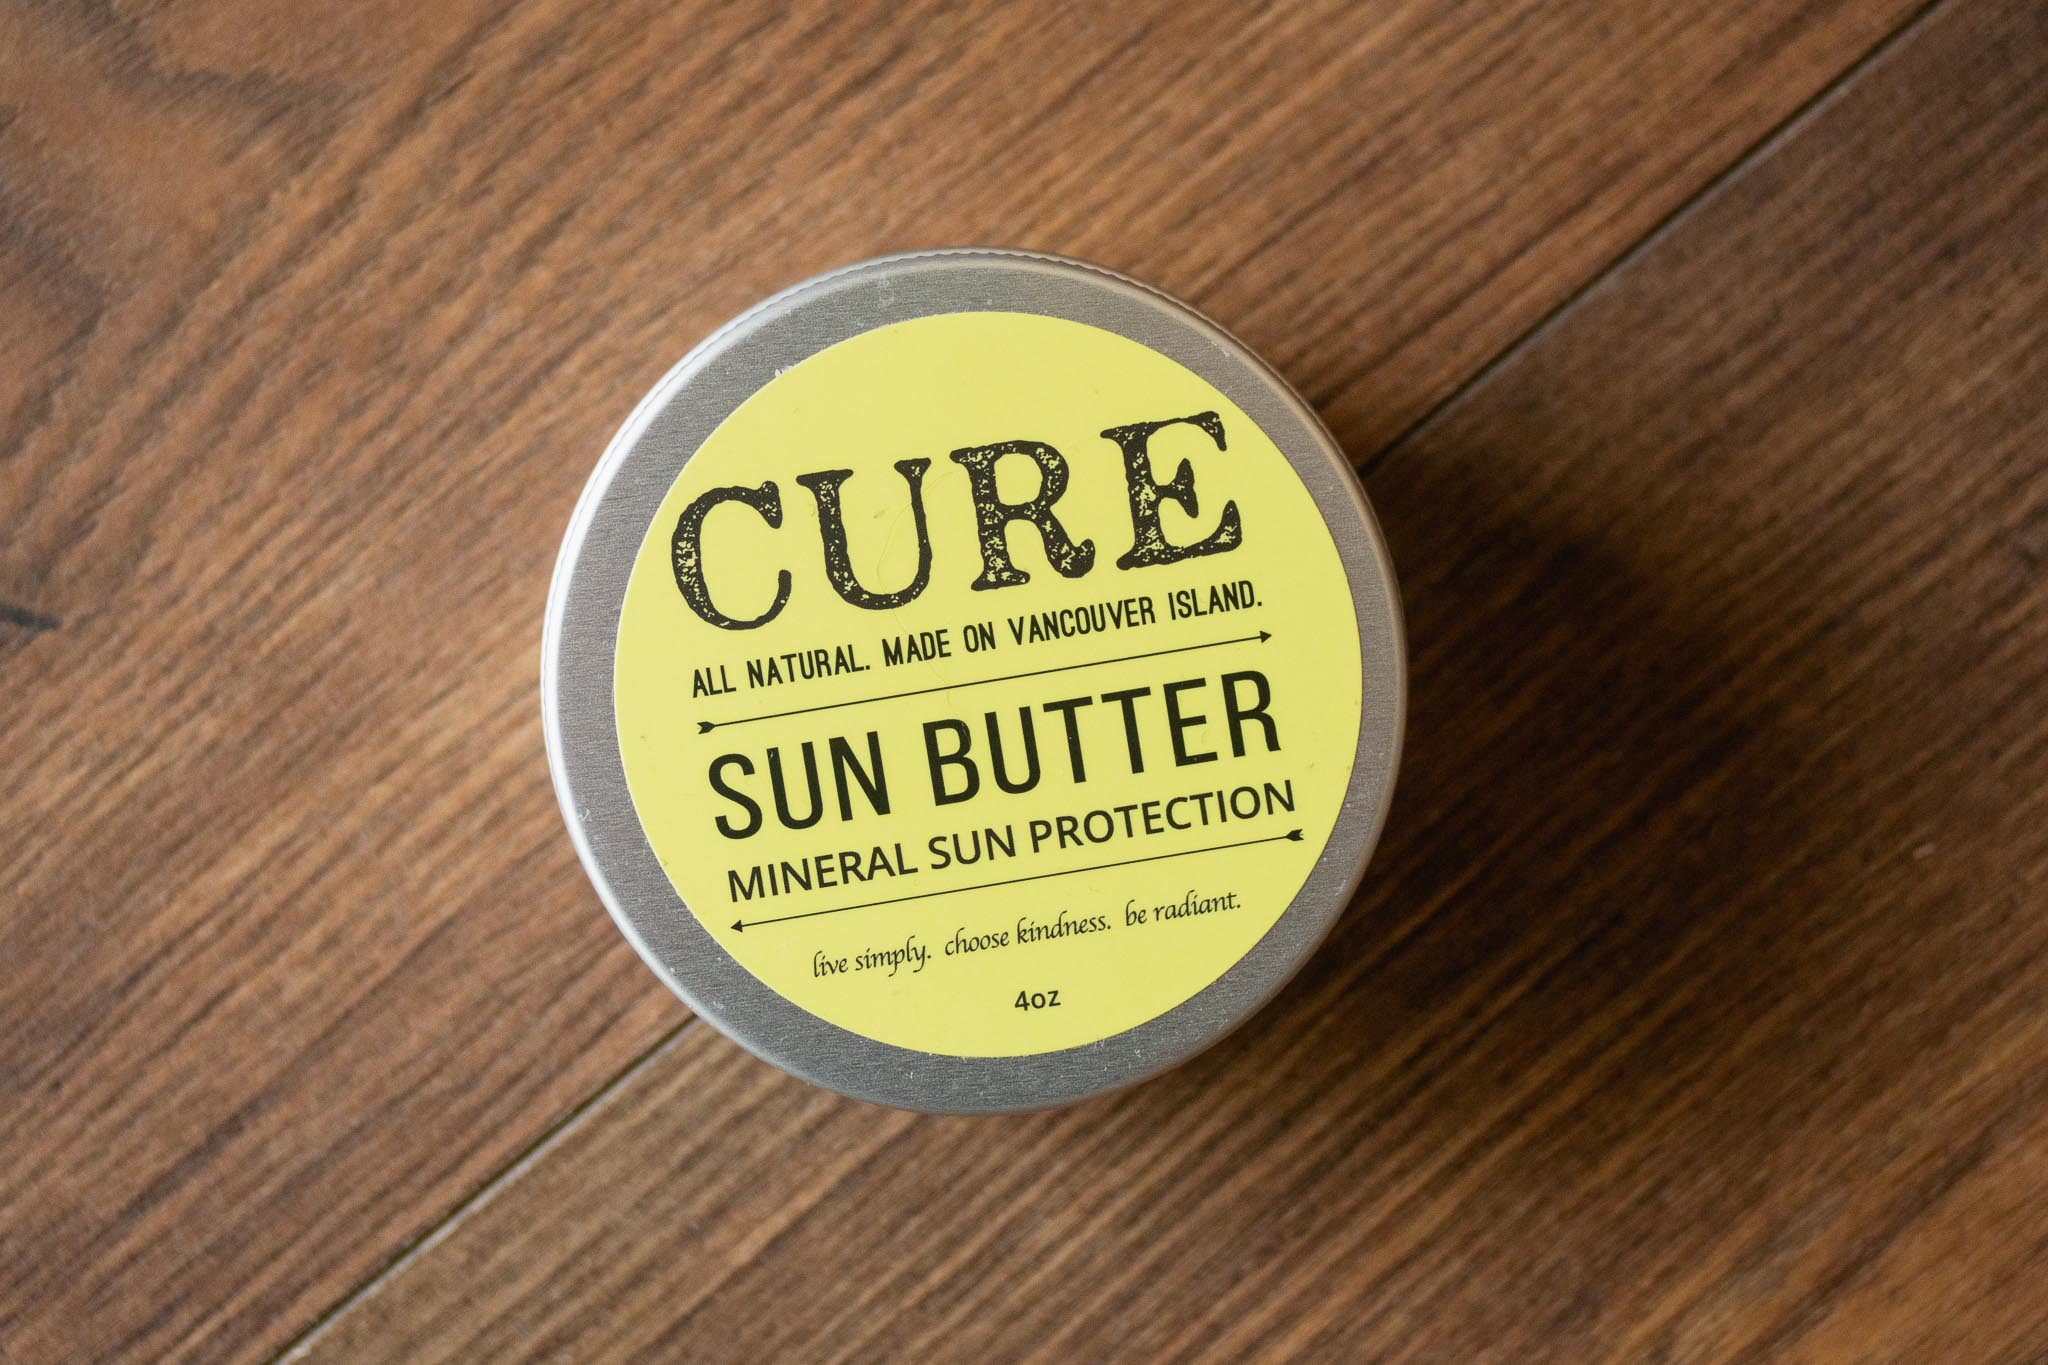 Sun Butter Mineral Sun Protection by Cure Soaps